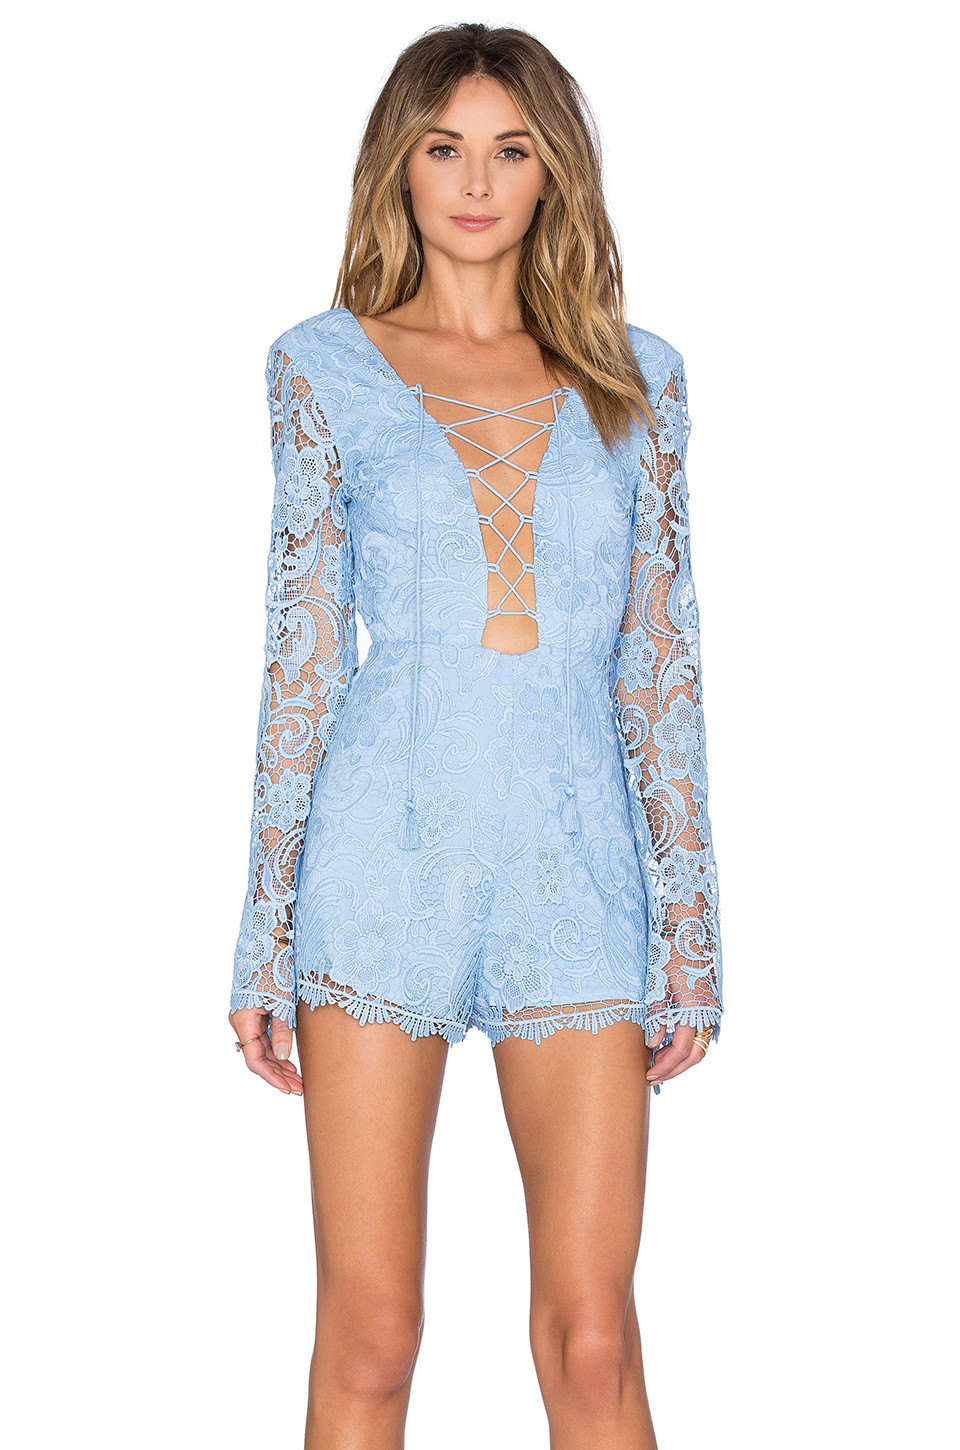 The Jetset Diaries lace-up lace romper $219